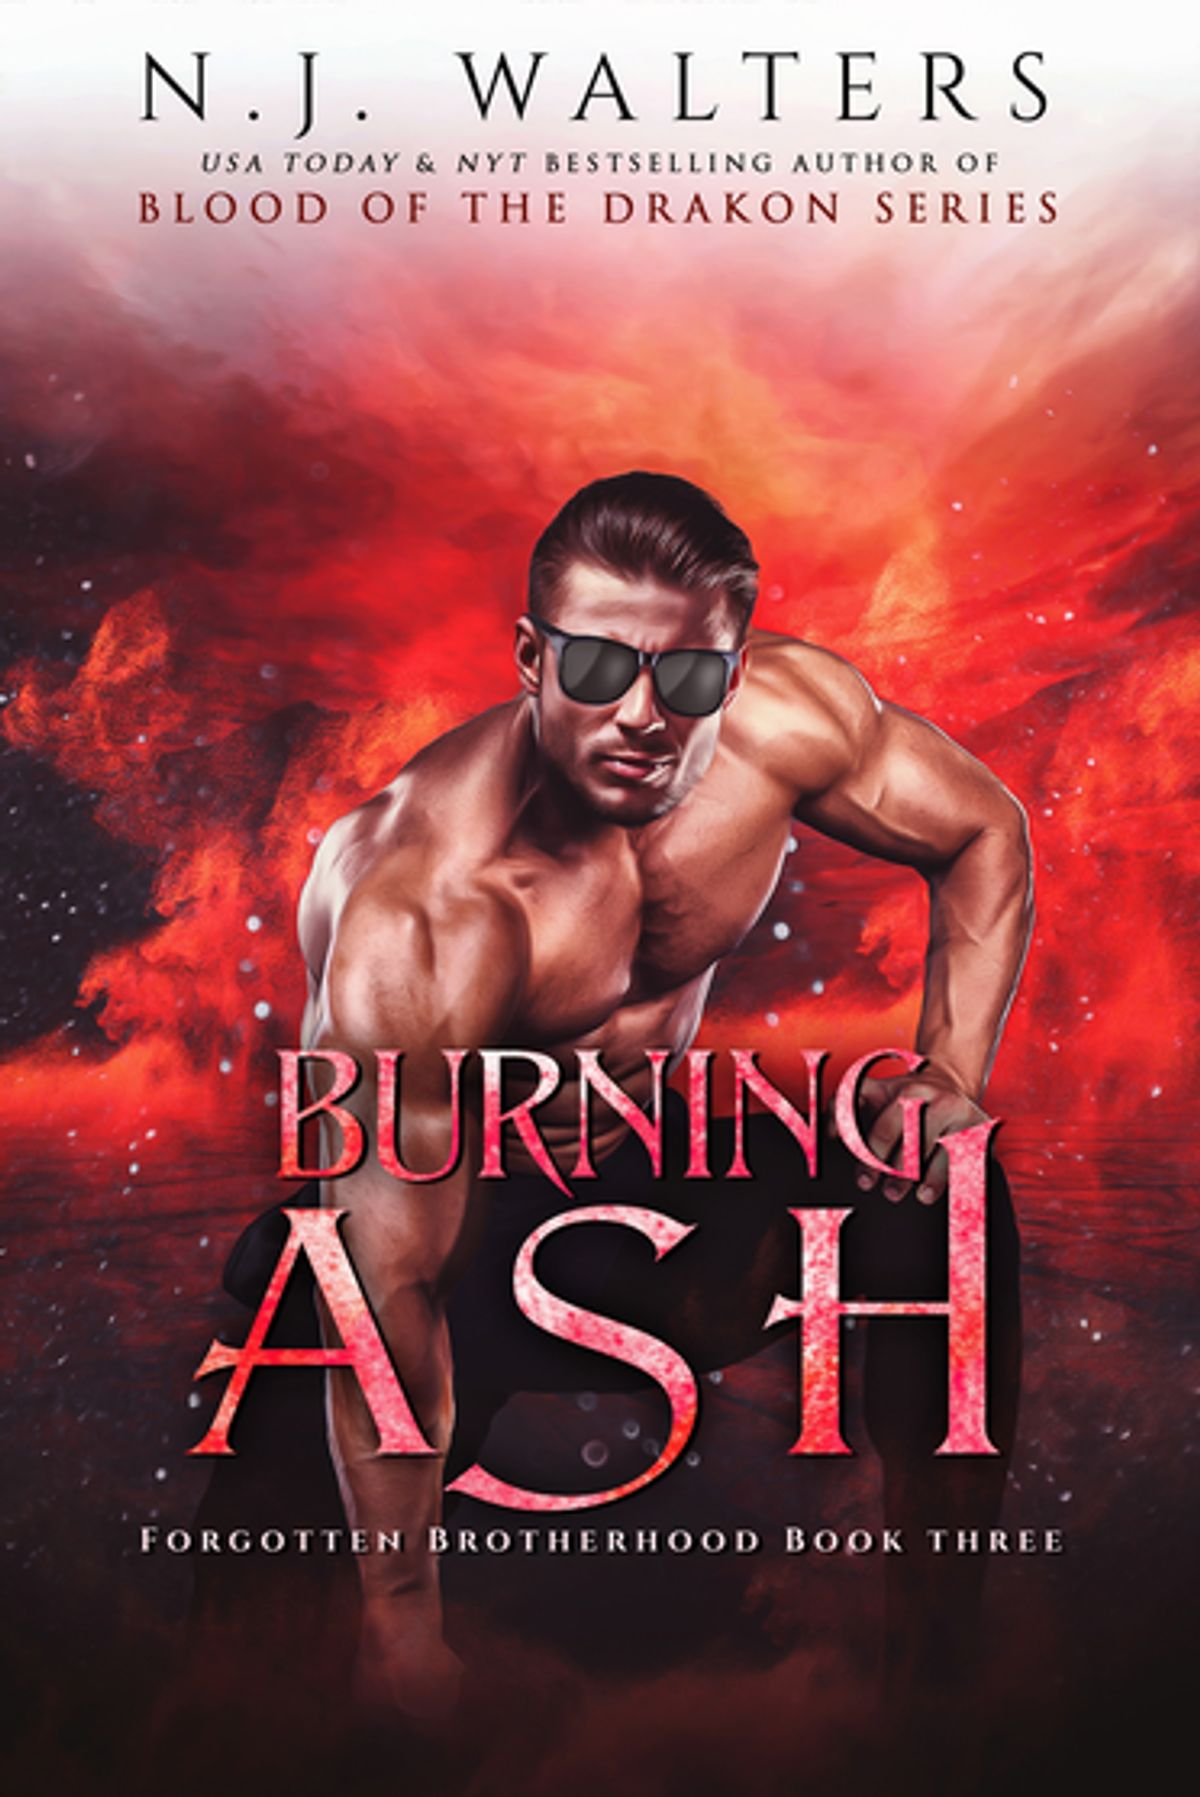 Burning Ash by N.J. Walters